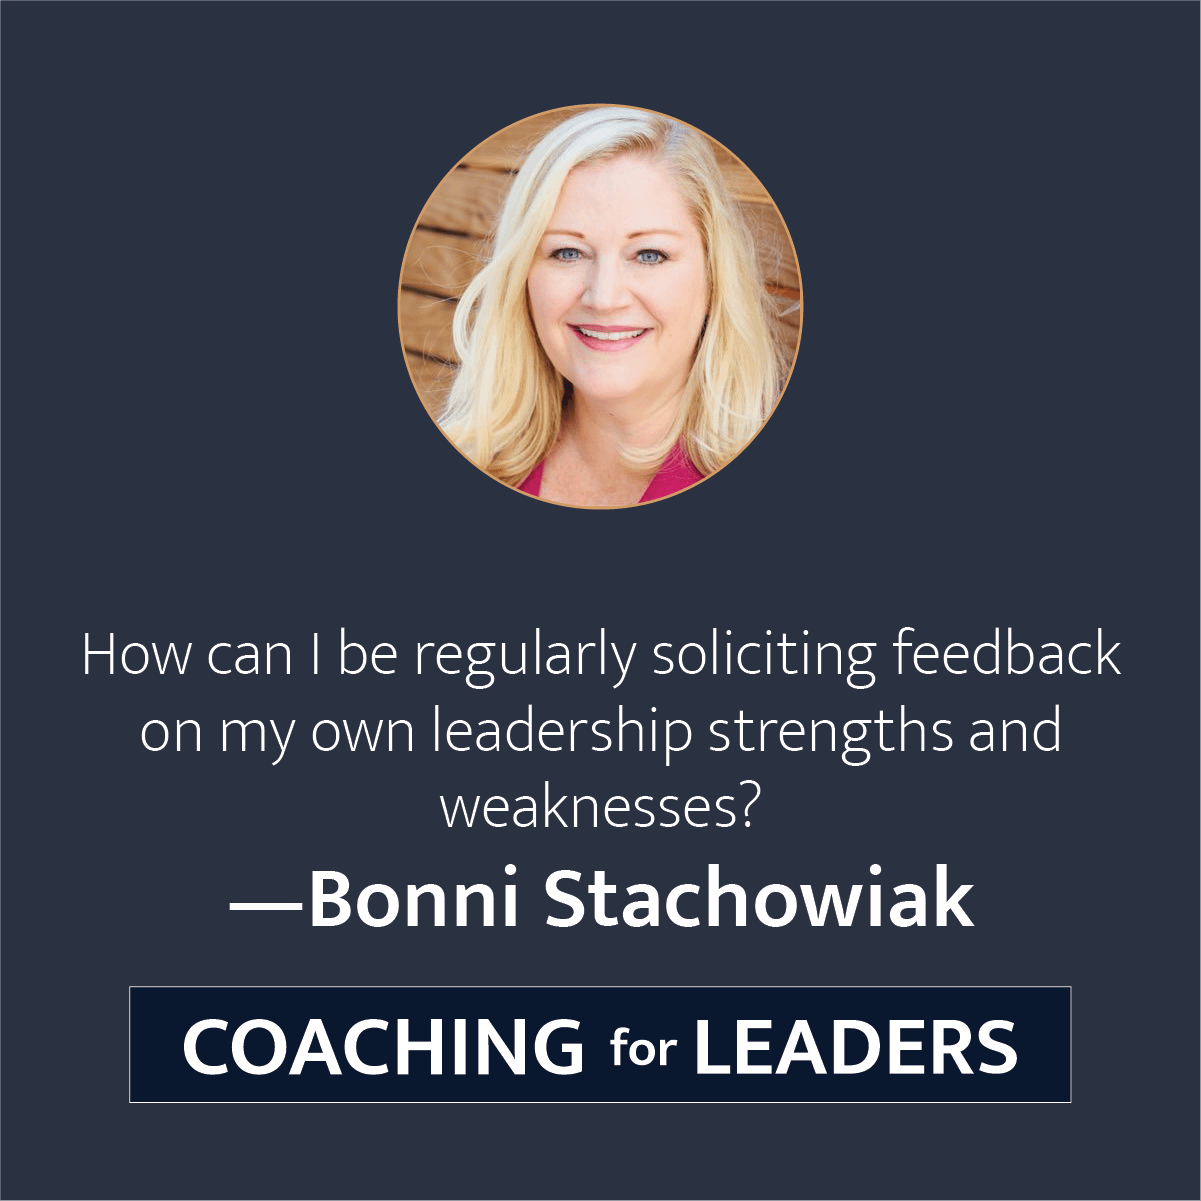 How can I be regularly soliciting feedback on my own leadership strengths and weaknesses?